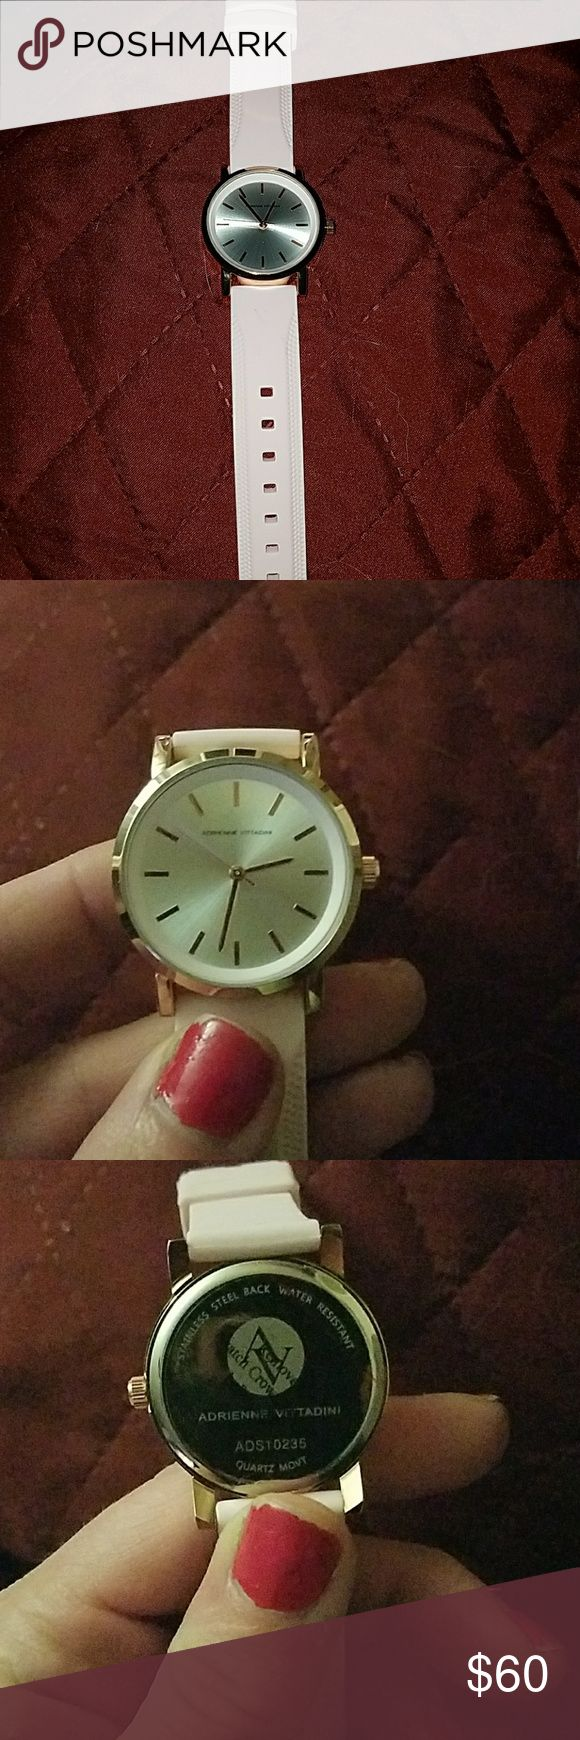 Super nice Adrienne Vittadini brand new watch. Really pretty watch by Adrienne Vittadini new watch. Pink rubbed band, with a silver face, and gold trim. Adrienne Vittadini Accessories Watches